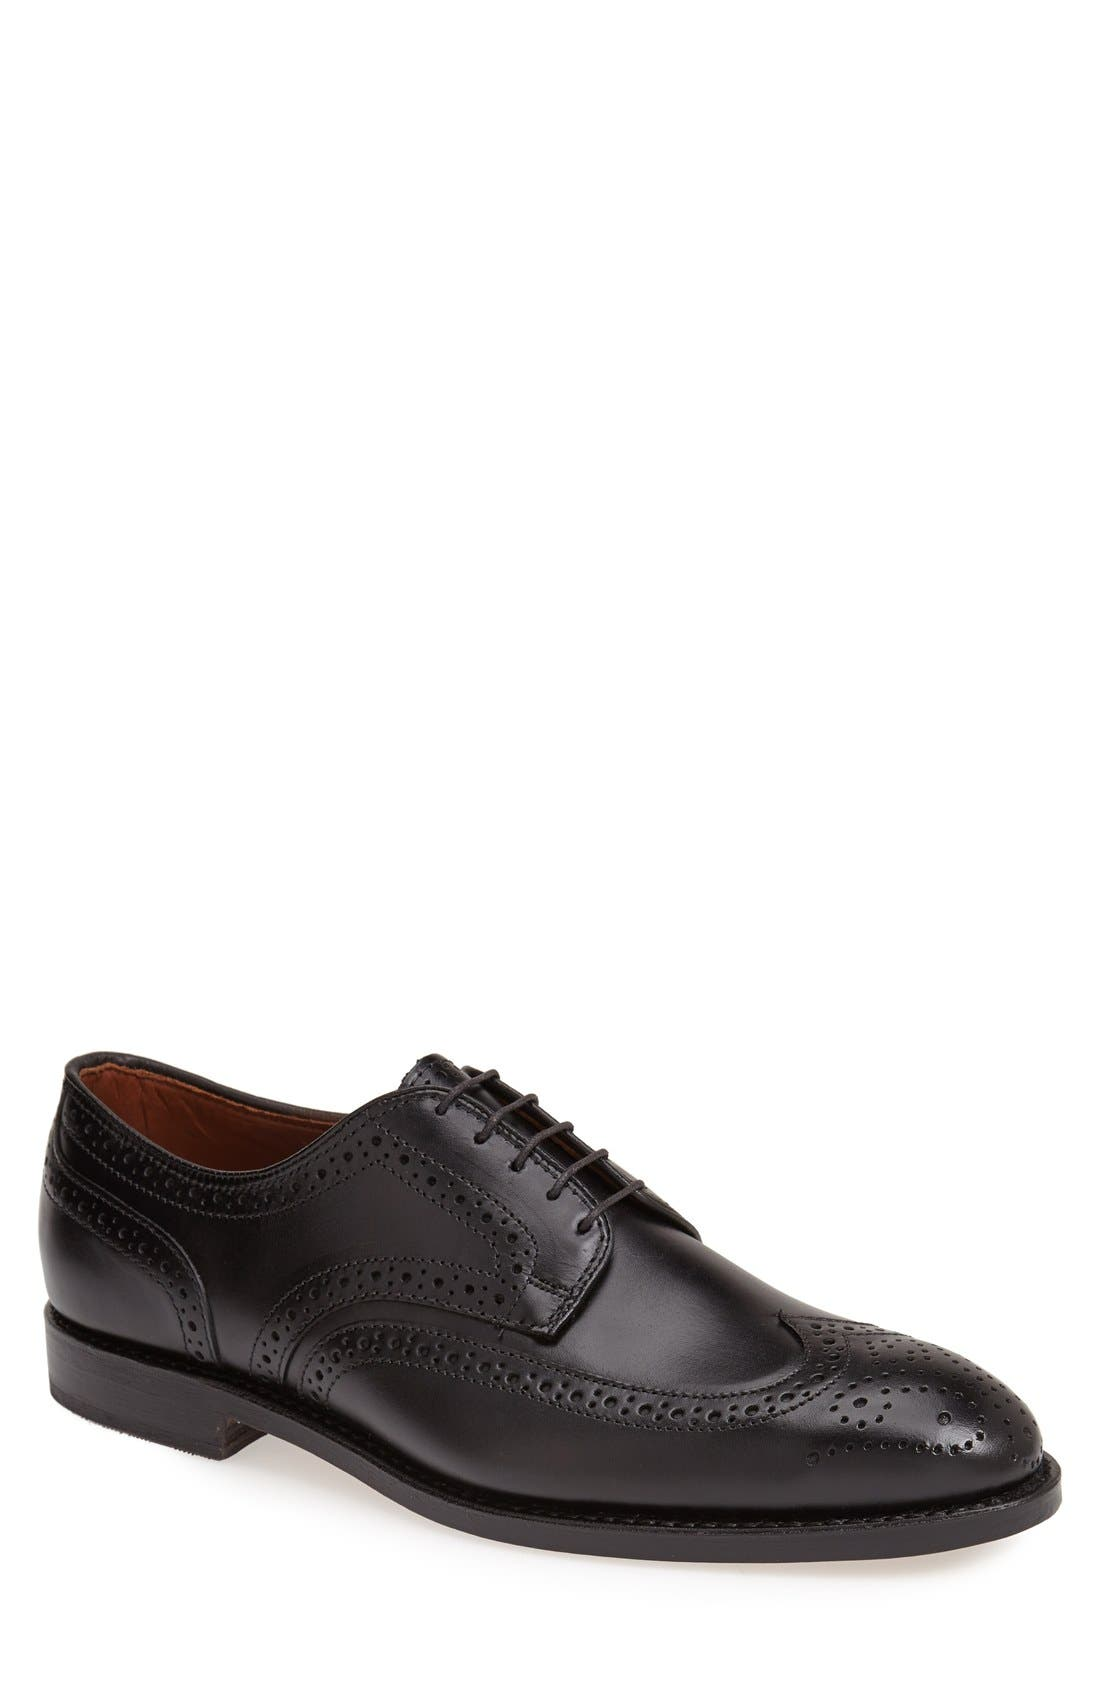 Alternate Image 1 Selected - Allen Edmonds 'Players' Wingtip (Men)